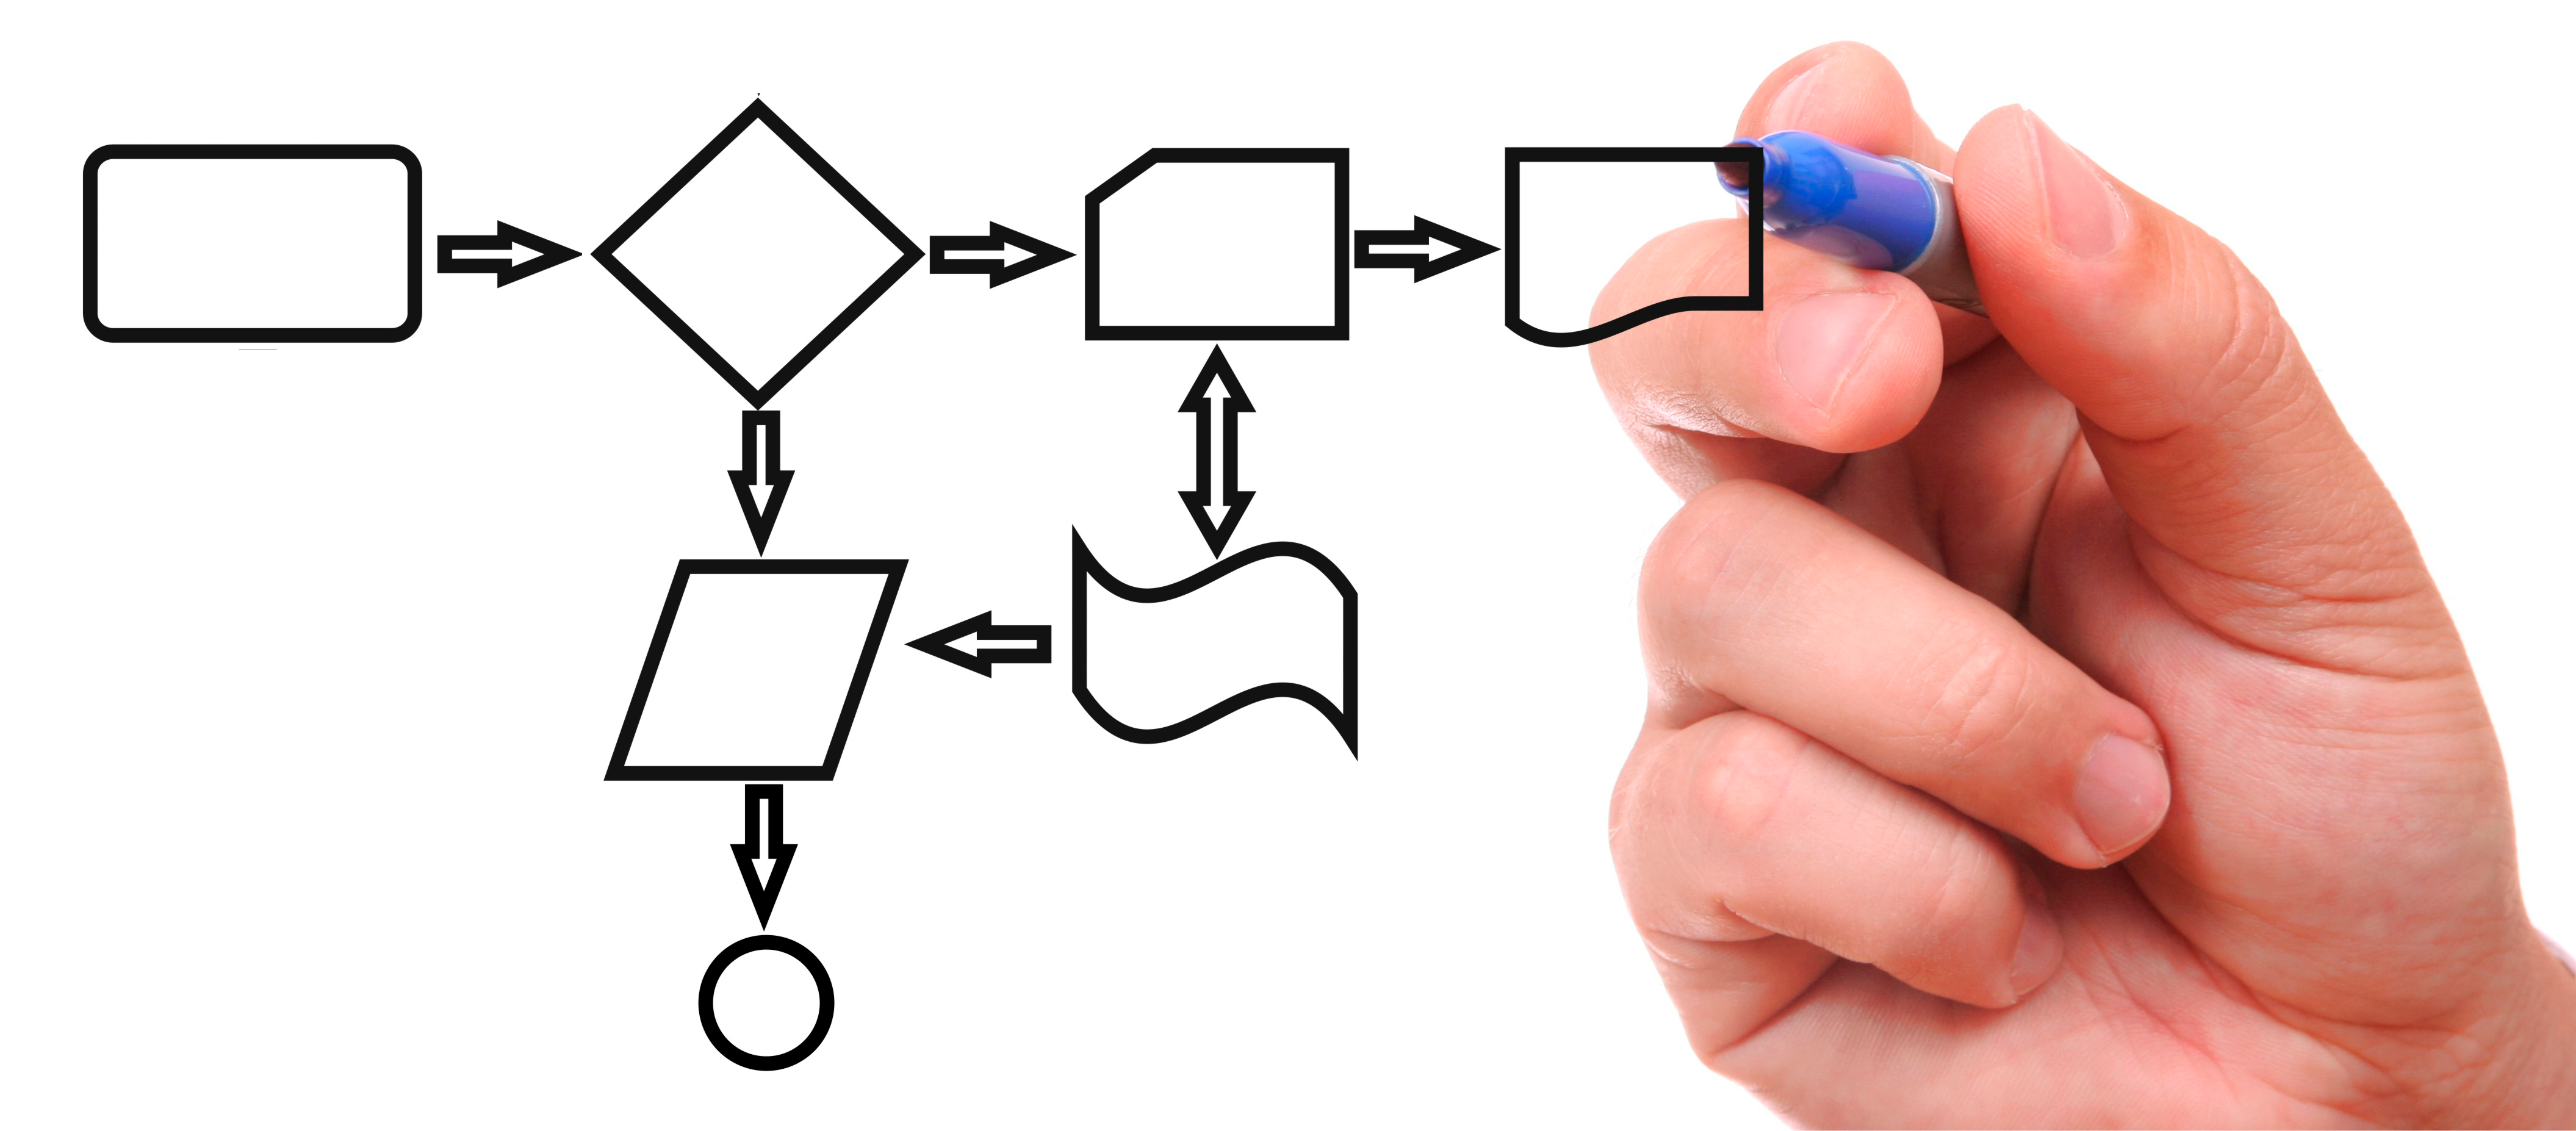 learning how idea management can help improve processes